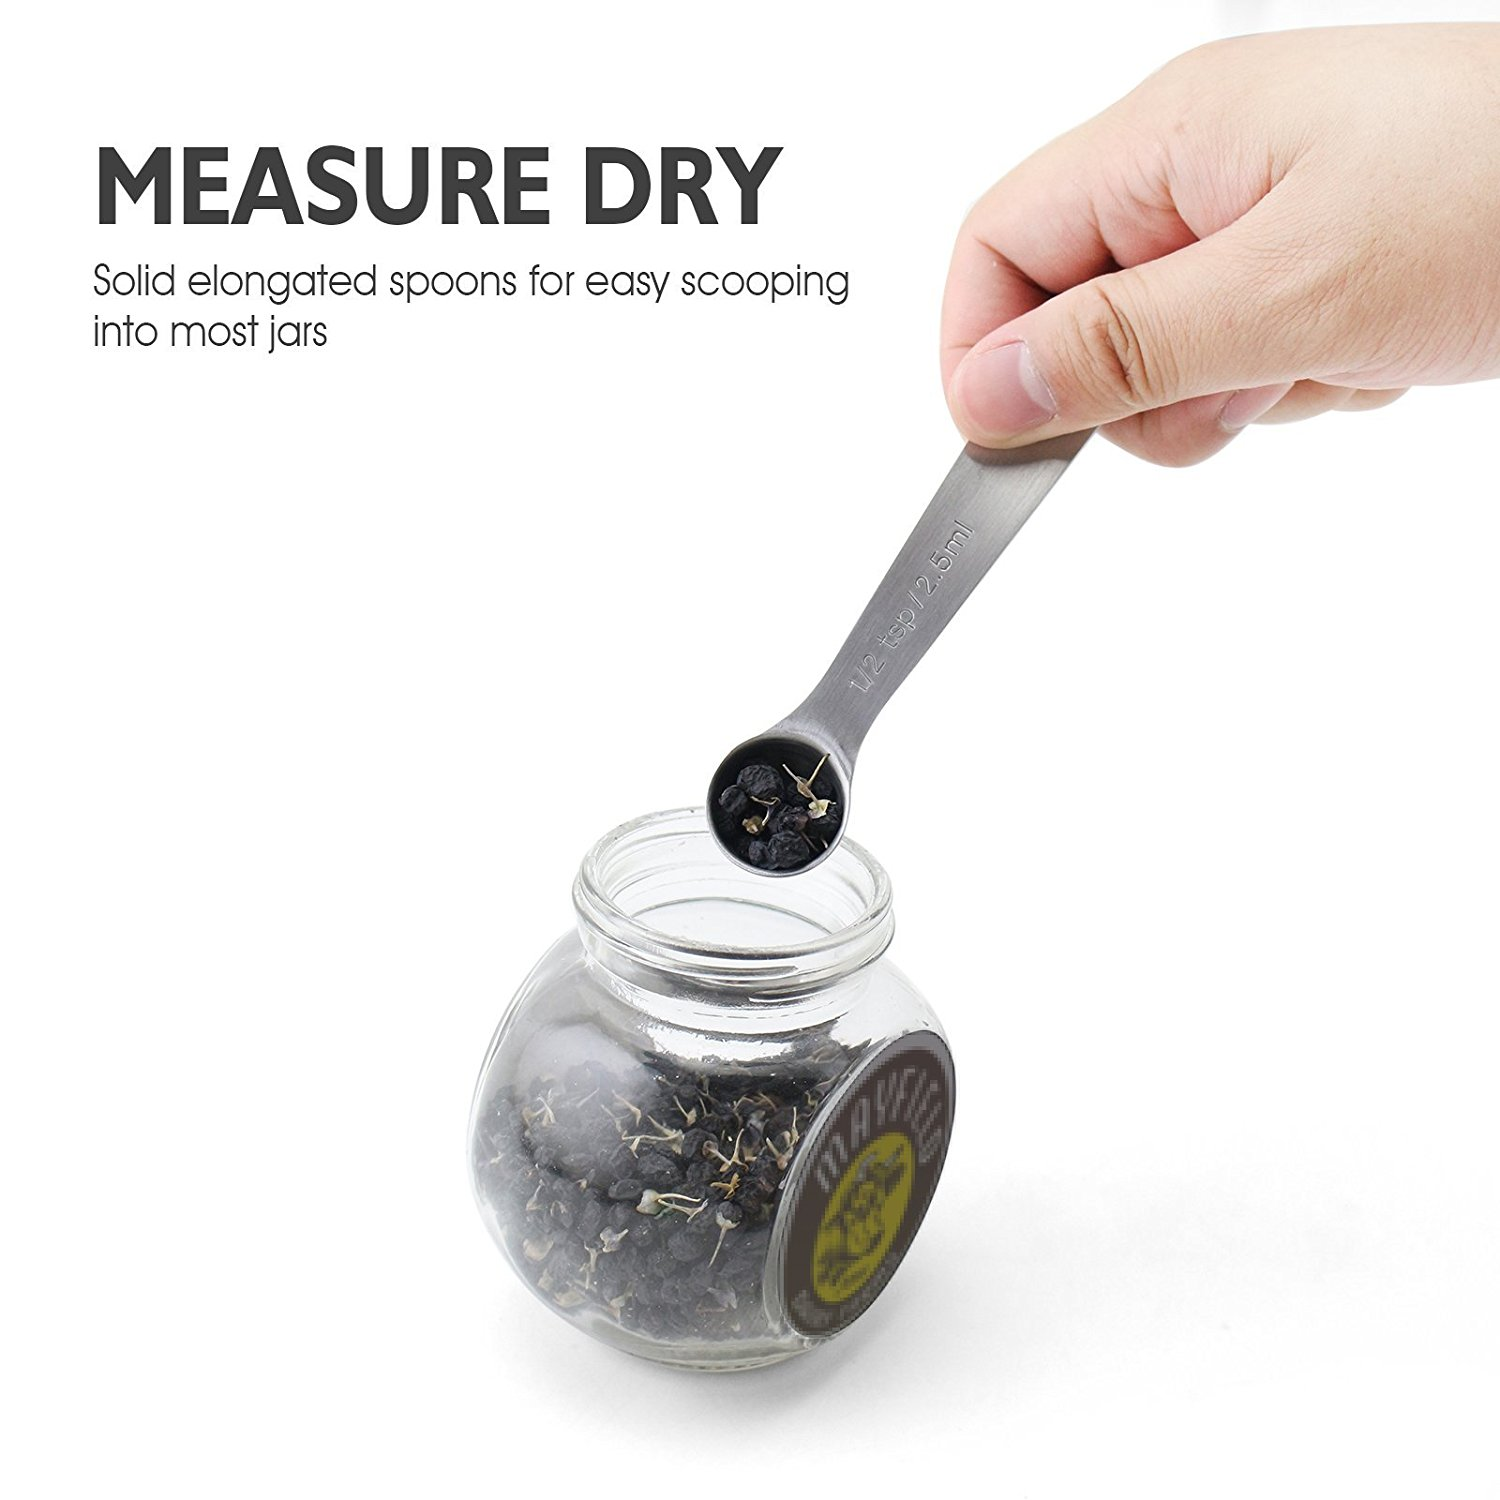 Honana CF-MS06 6 Pcs Stainless Steel Measuring Spoon Set for Measuring Dry and Liquid Ingredients